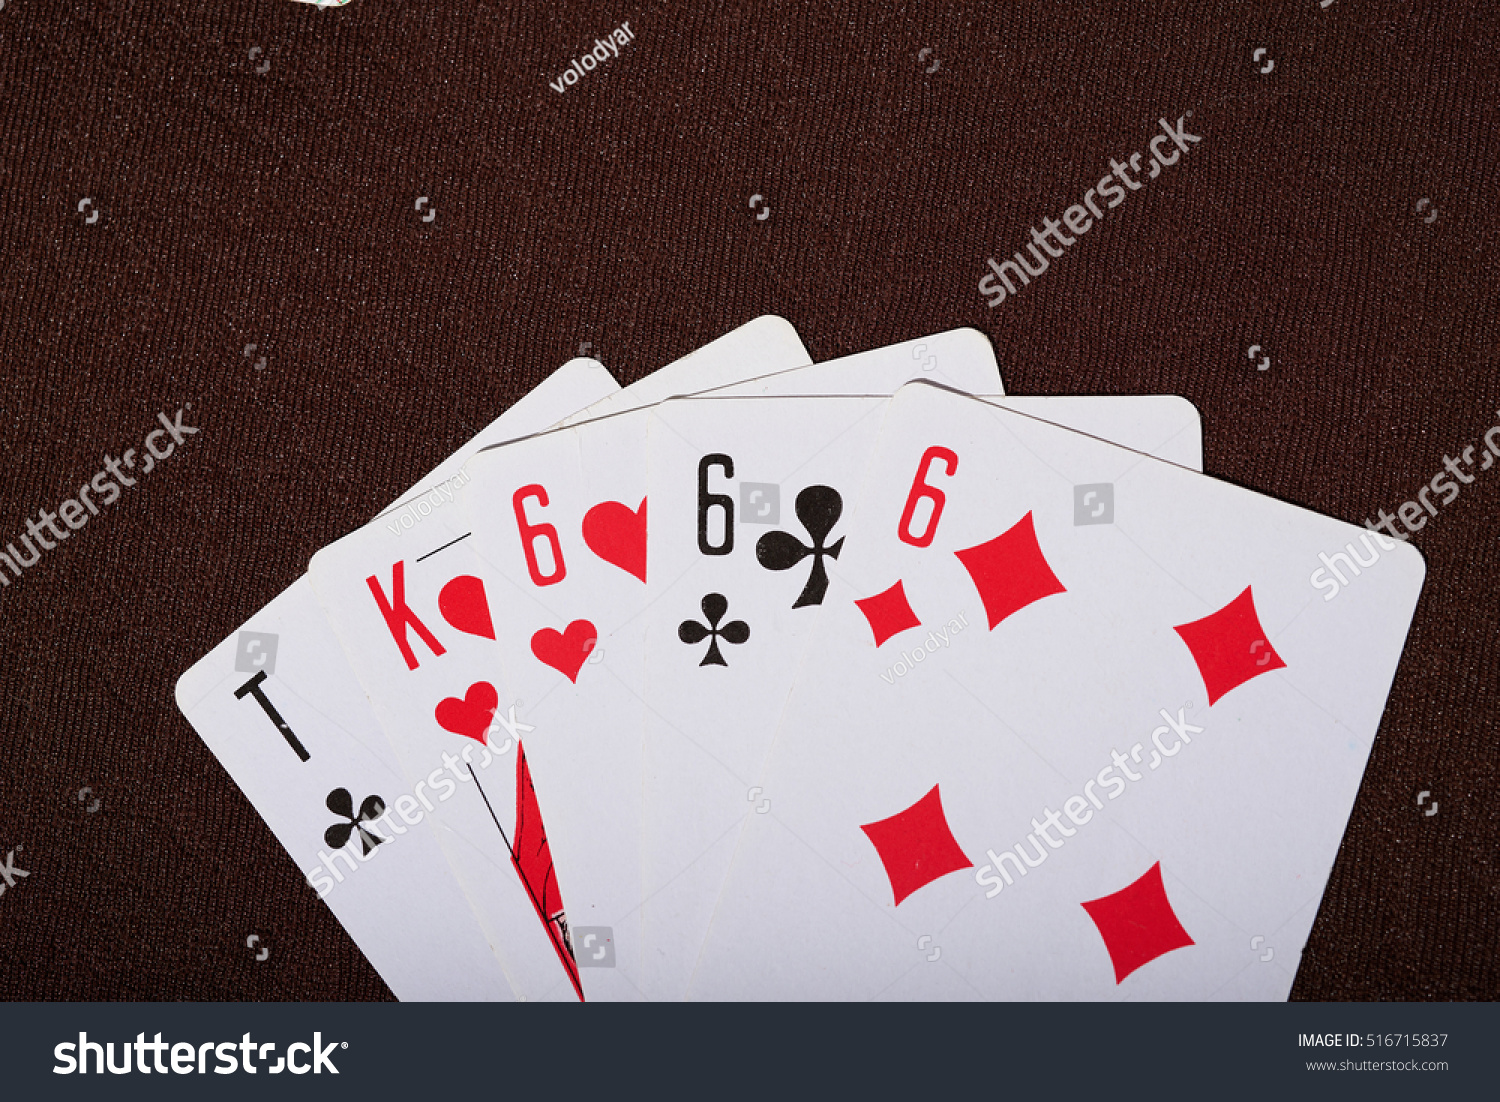 Moscow poker